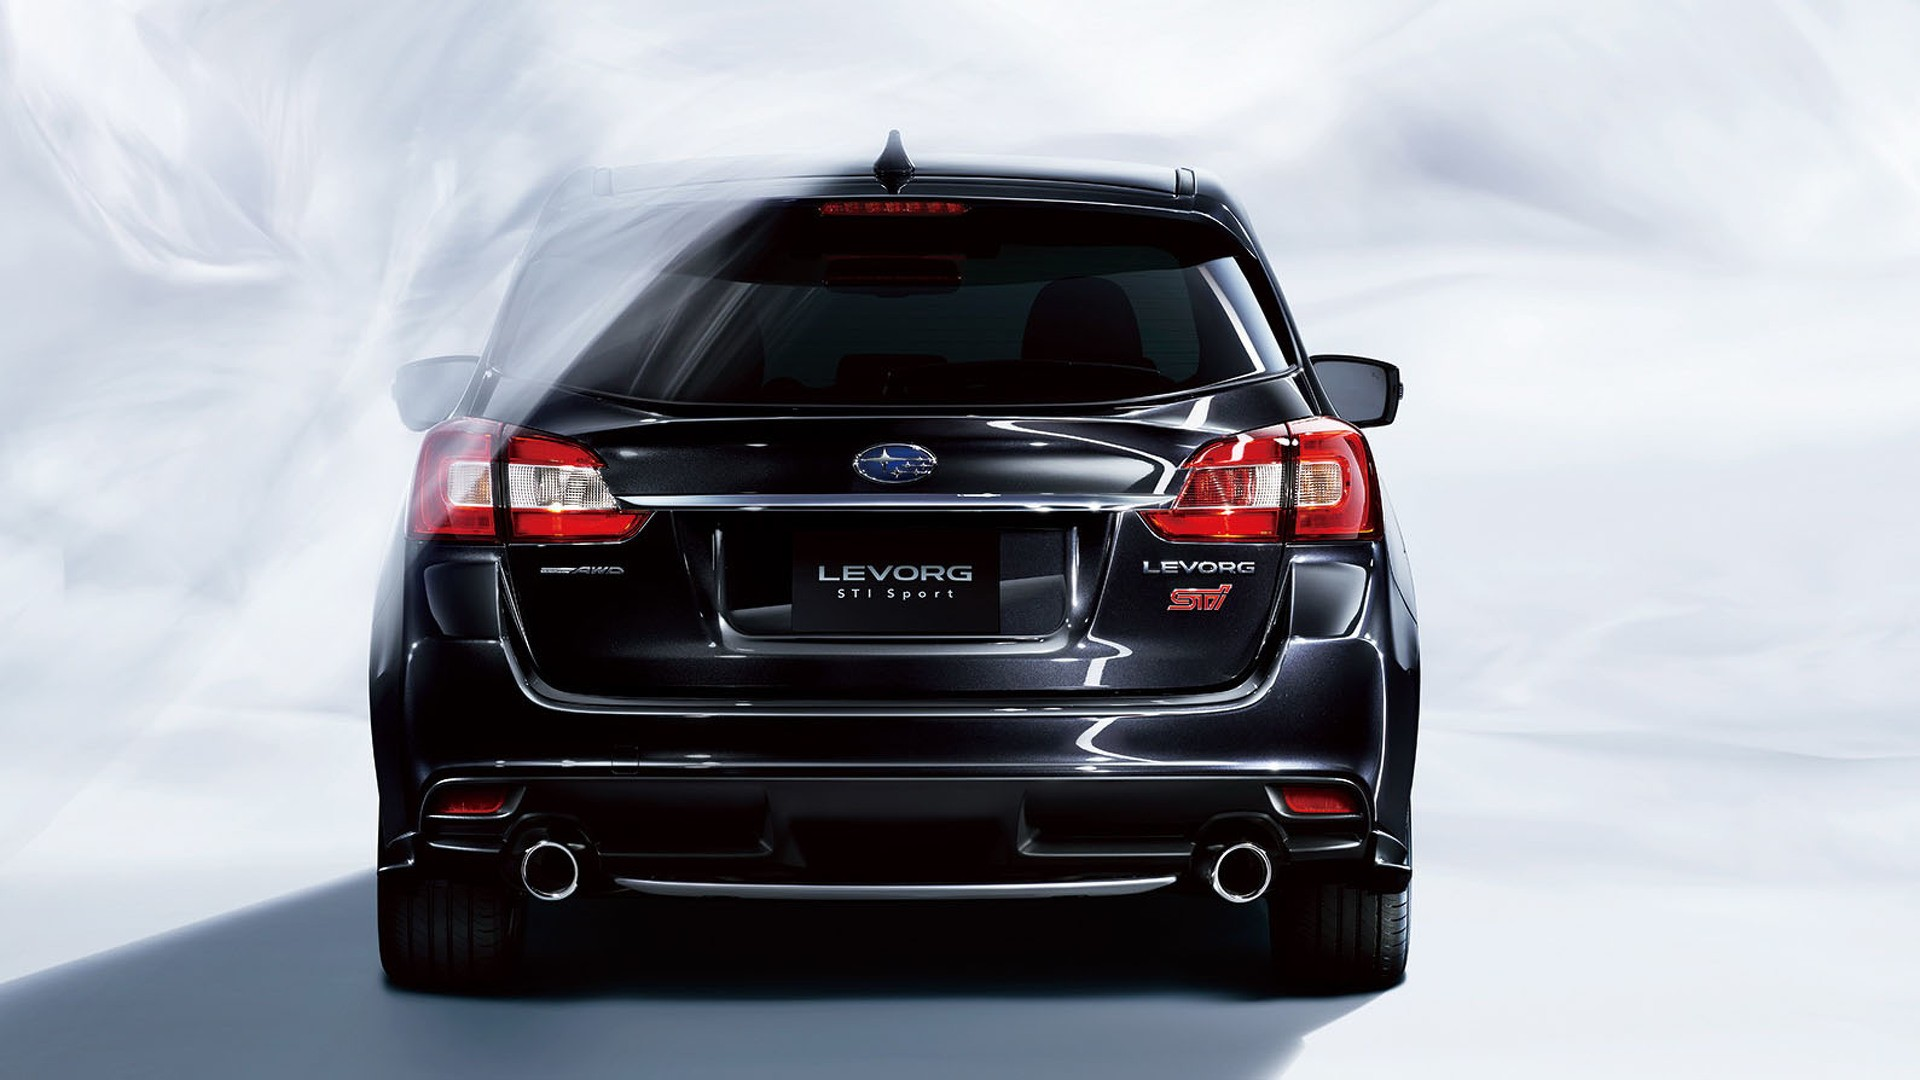 Subaru Reveals Levorg Sti Sport With 2 0 And 1 6 Turbo